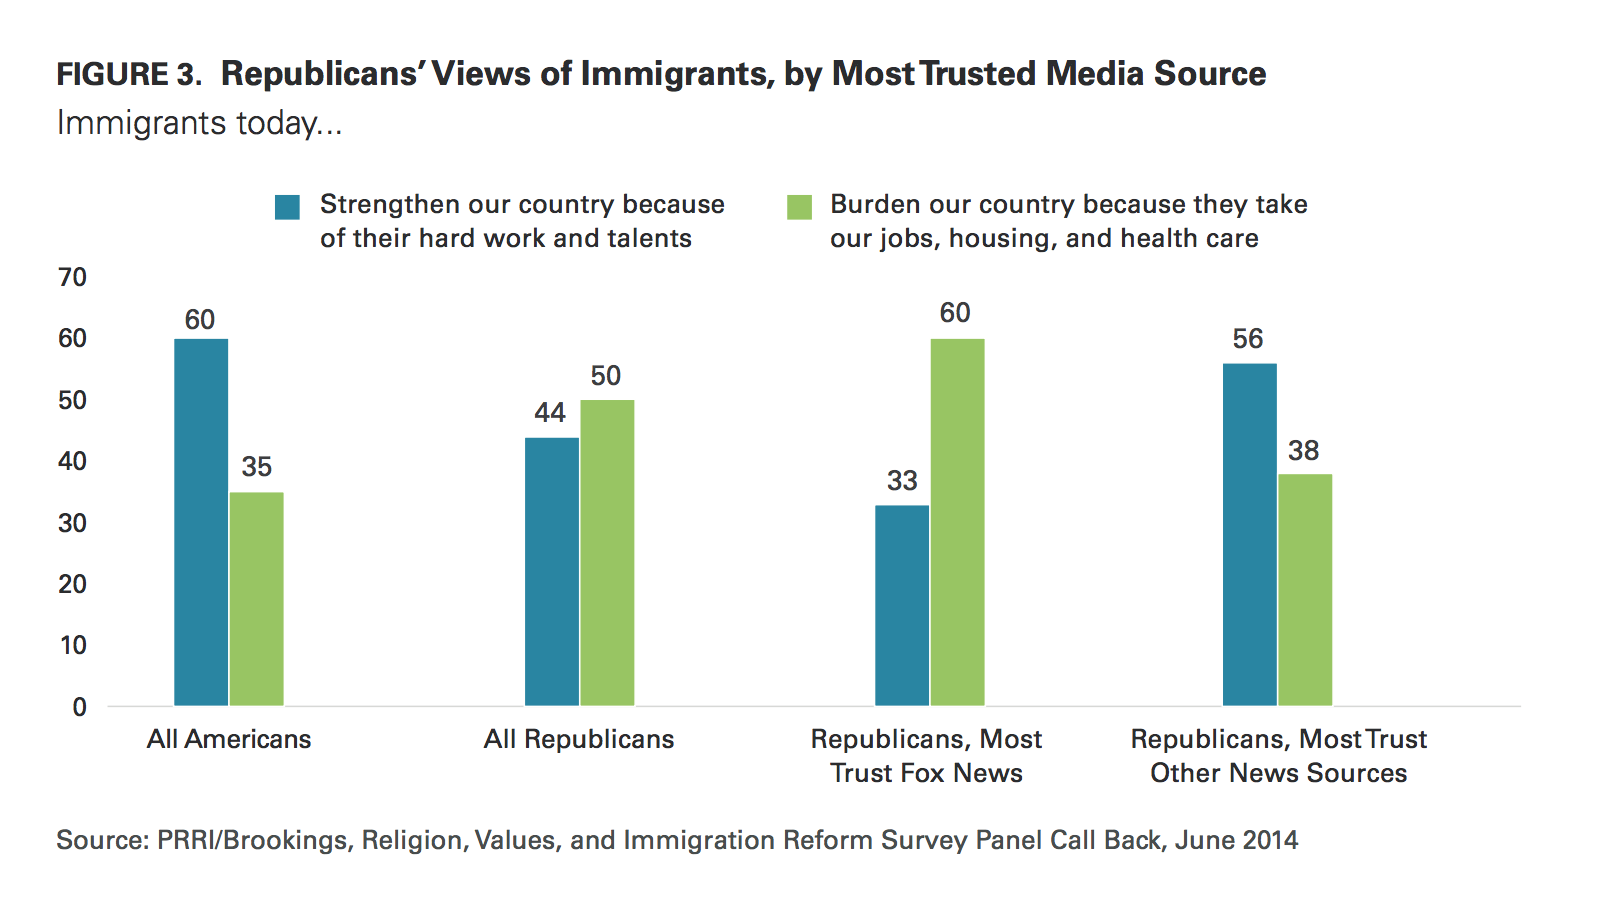 immigration views How the world views migration provides, for the first time, an insight into public attitudes towards immigration worldwide the findings presented in the report.